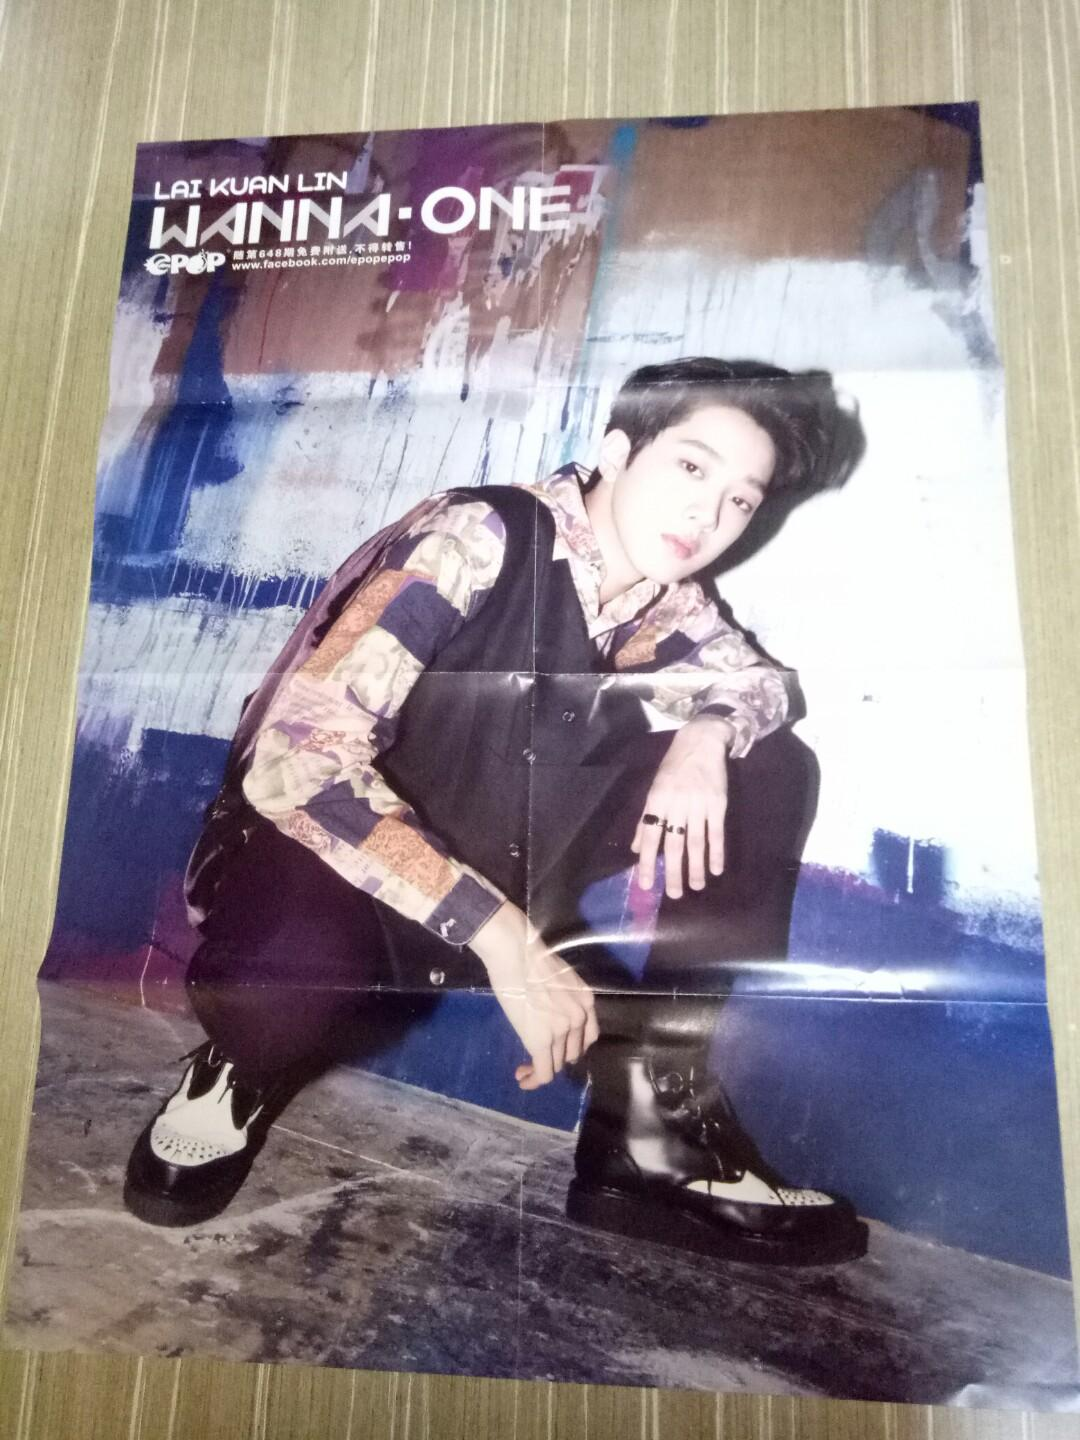 EXO SUHO <UNIVERSE> / WANNA ONE 赖冠霖Lai Kuanlin double page poster